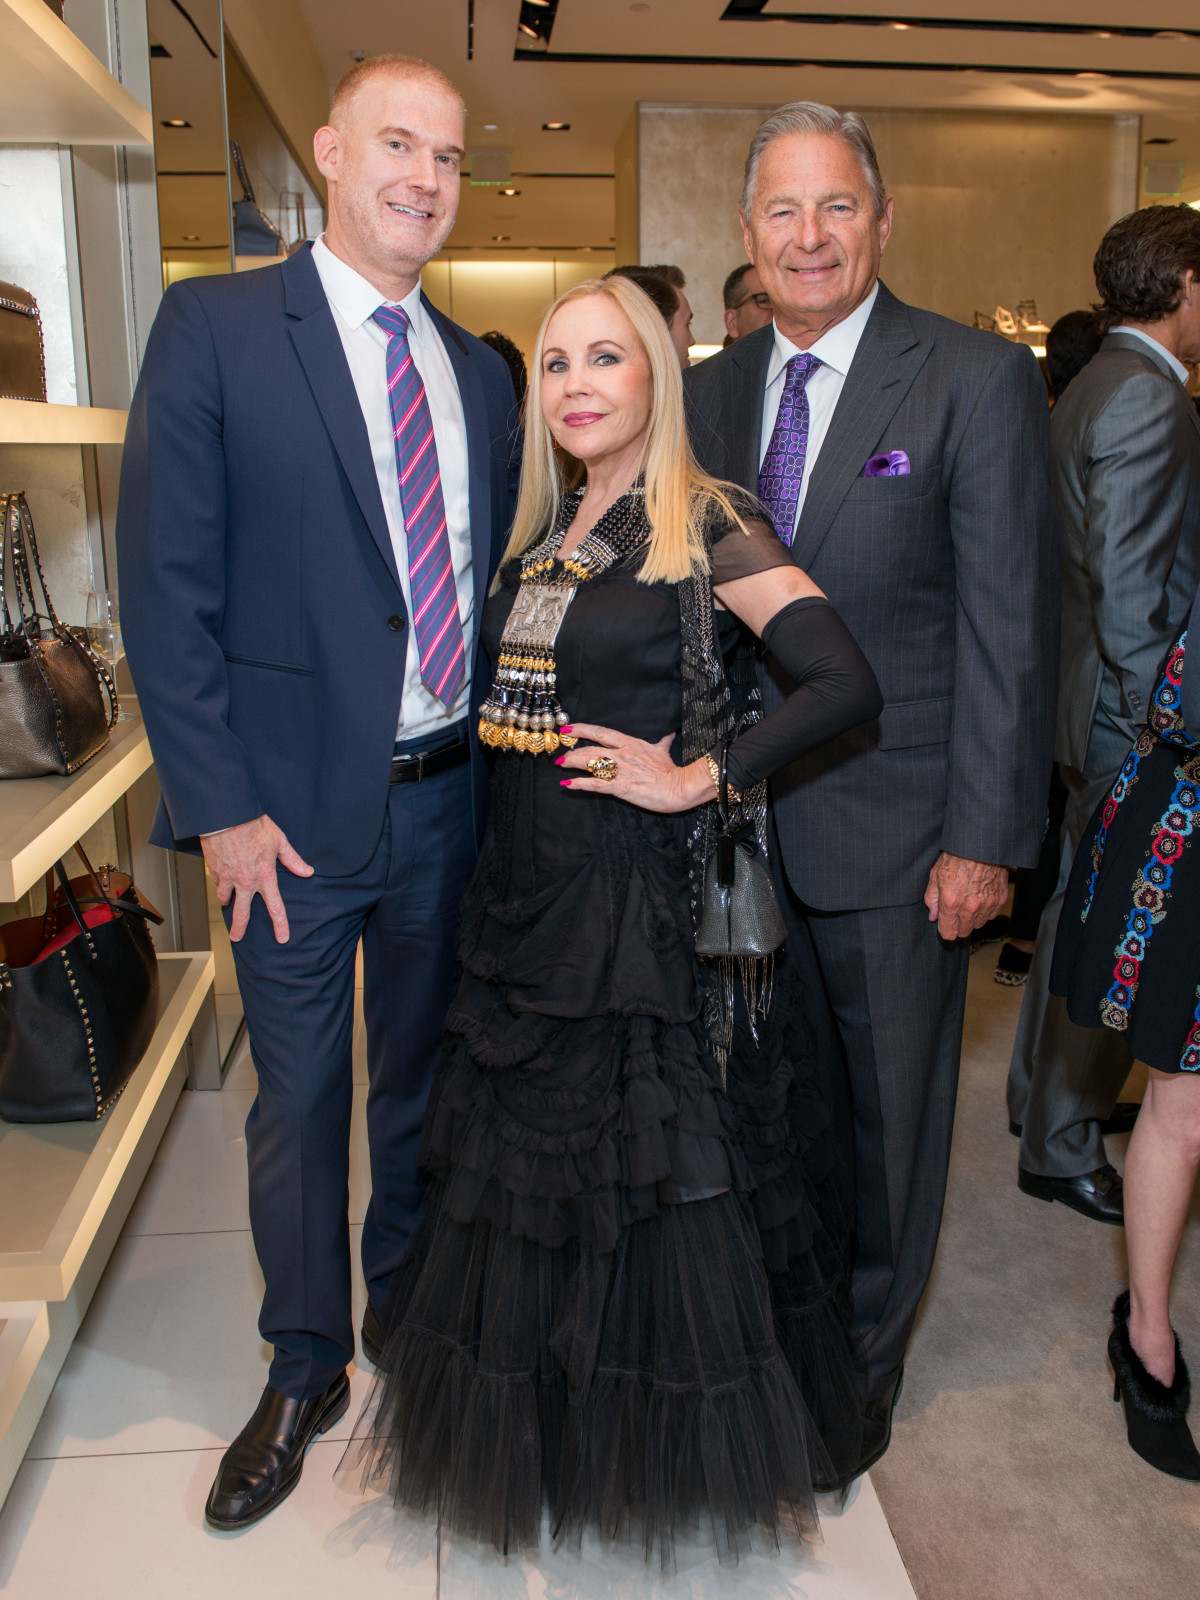 News, Shelby, Heart of Fashion, Valentino, Sept. 2015, Gary Soloff, Carolyn Farb, Charles Ward